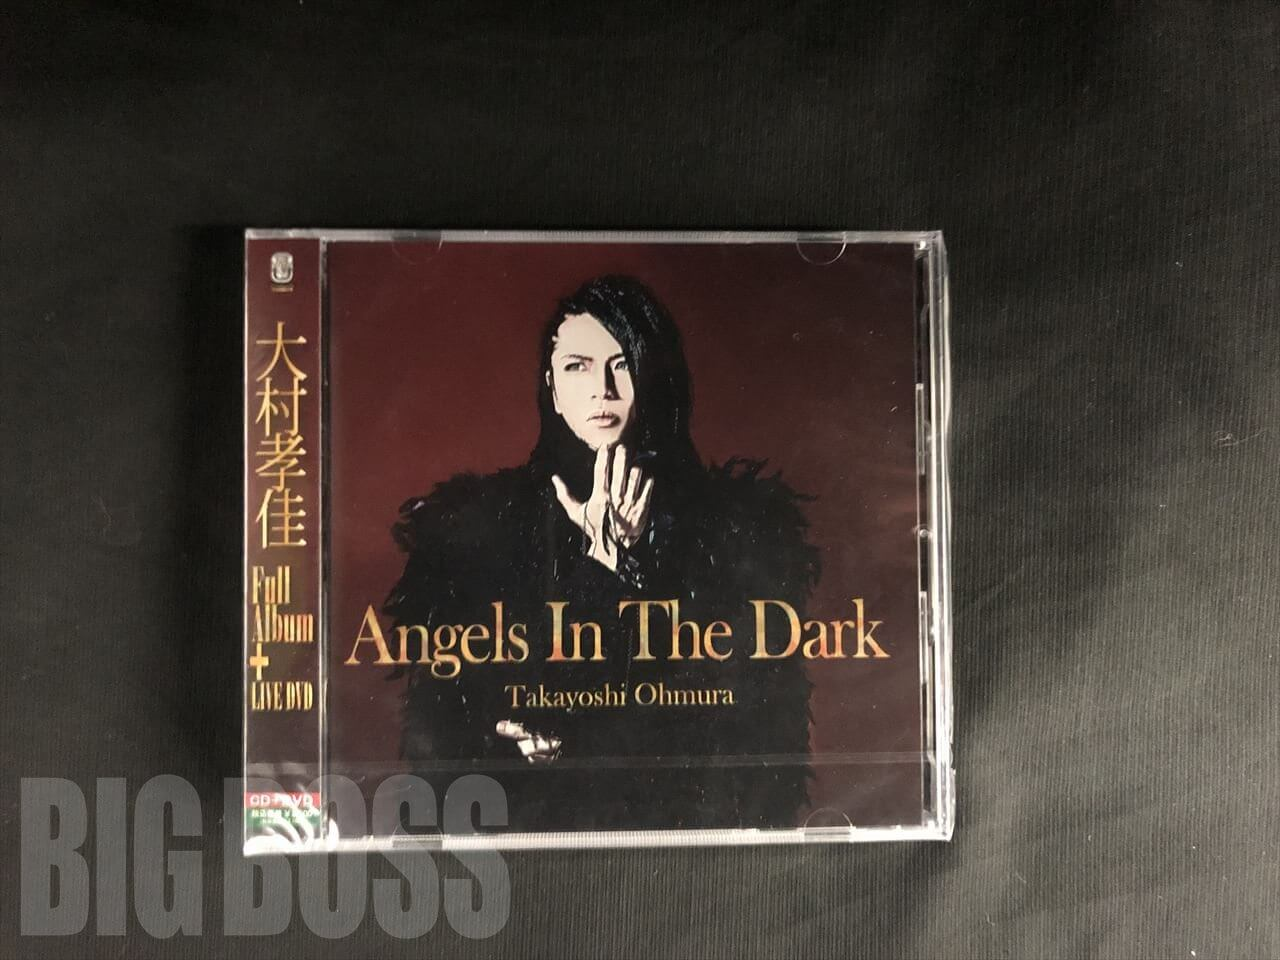 【CD+DVD】Angels In The Dark / 大村孝佳 (KSCQ-1070)